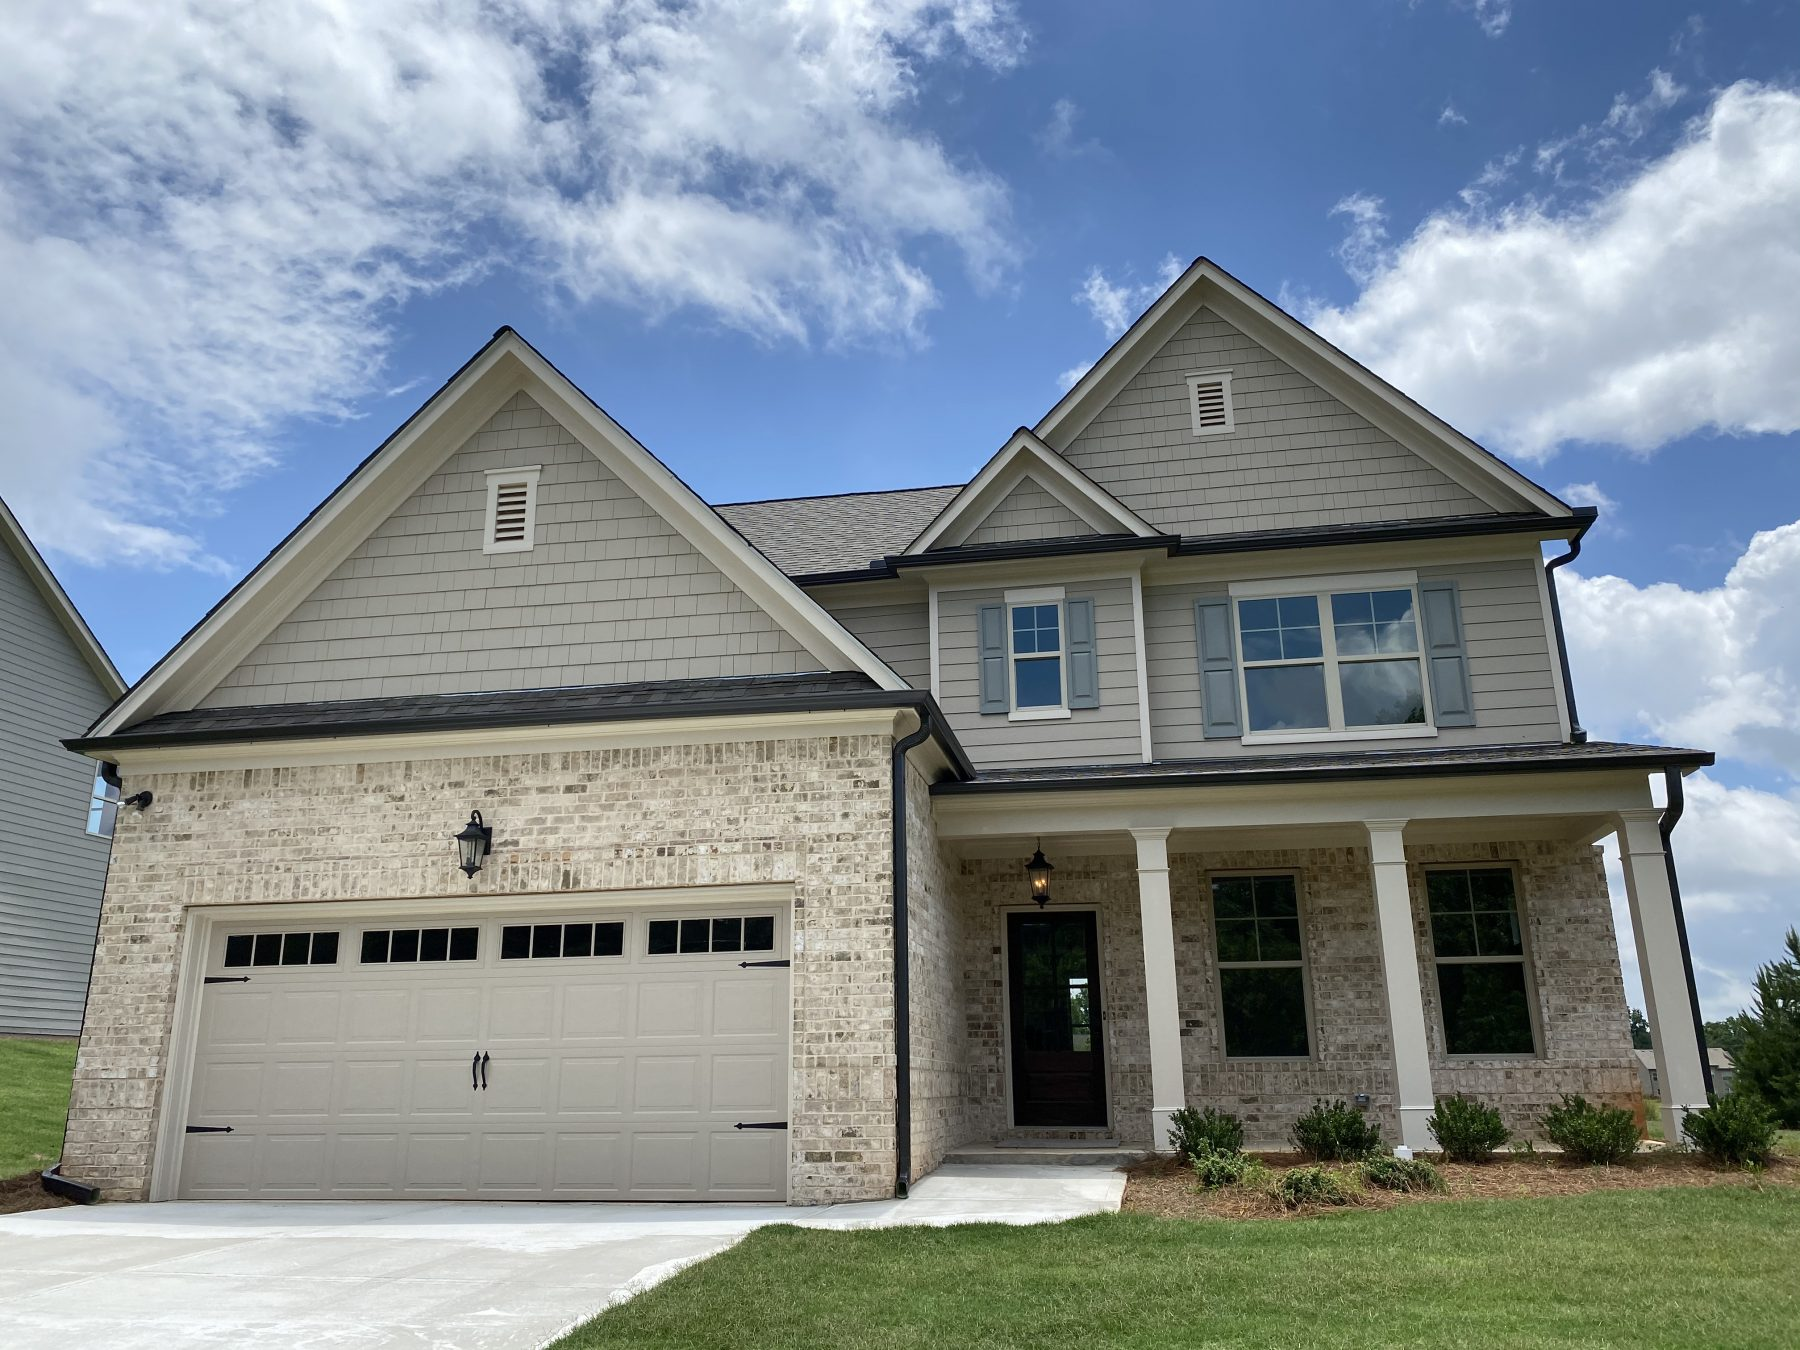 new home exterior in Traditions of Braselton